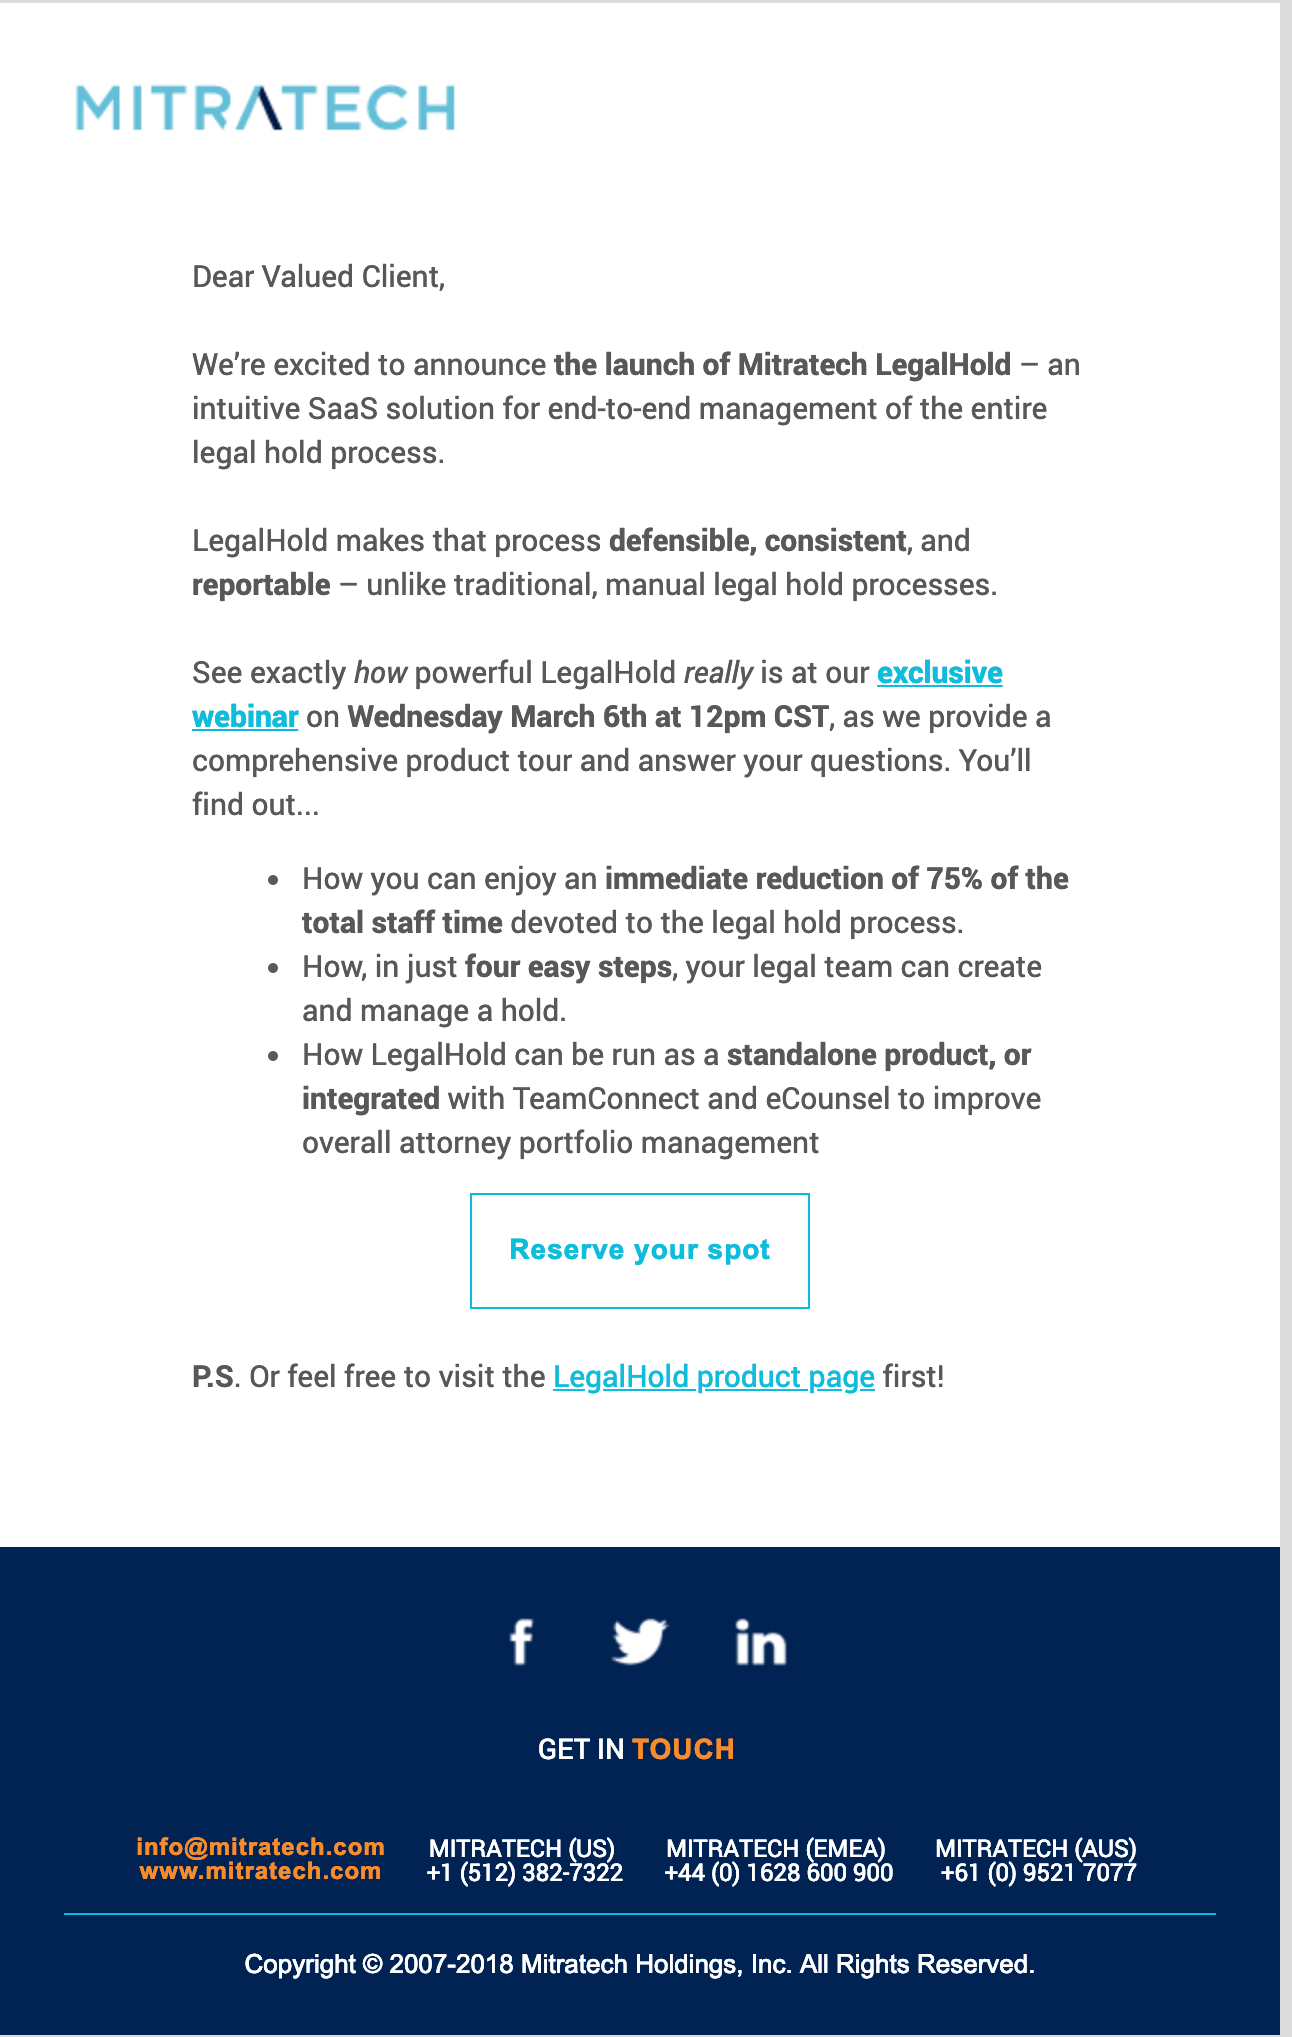 Introducing Mitratech LegalHold Email